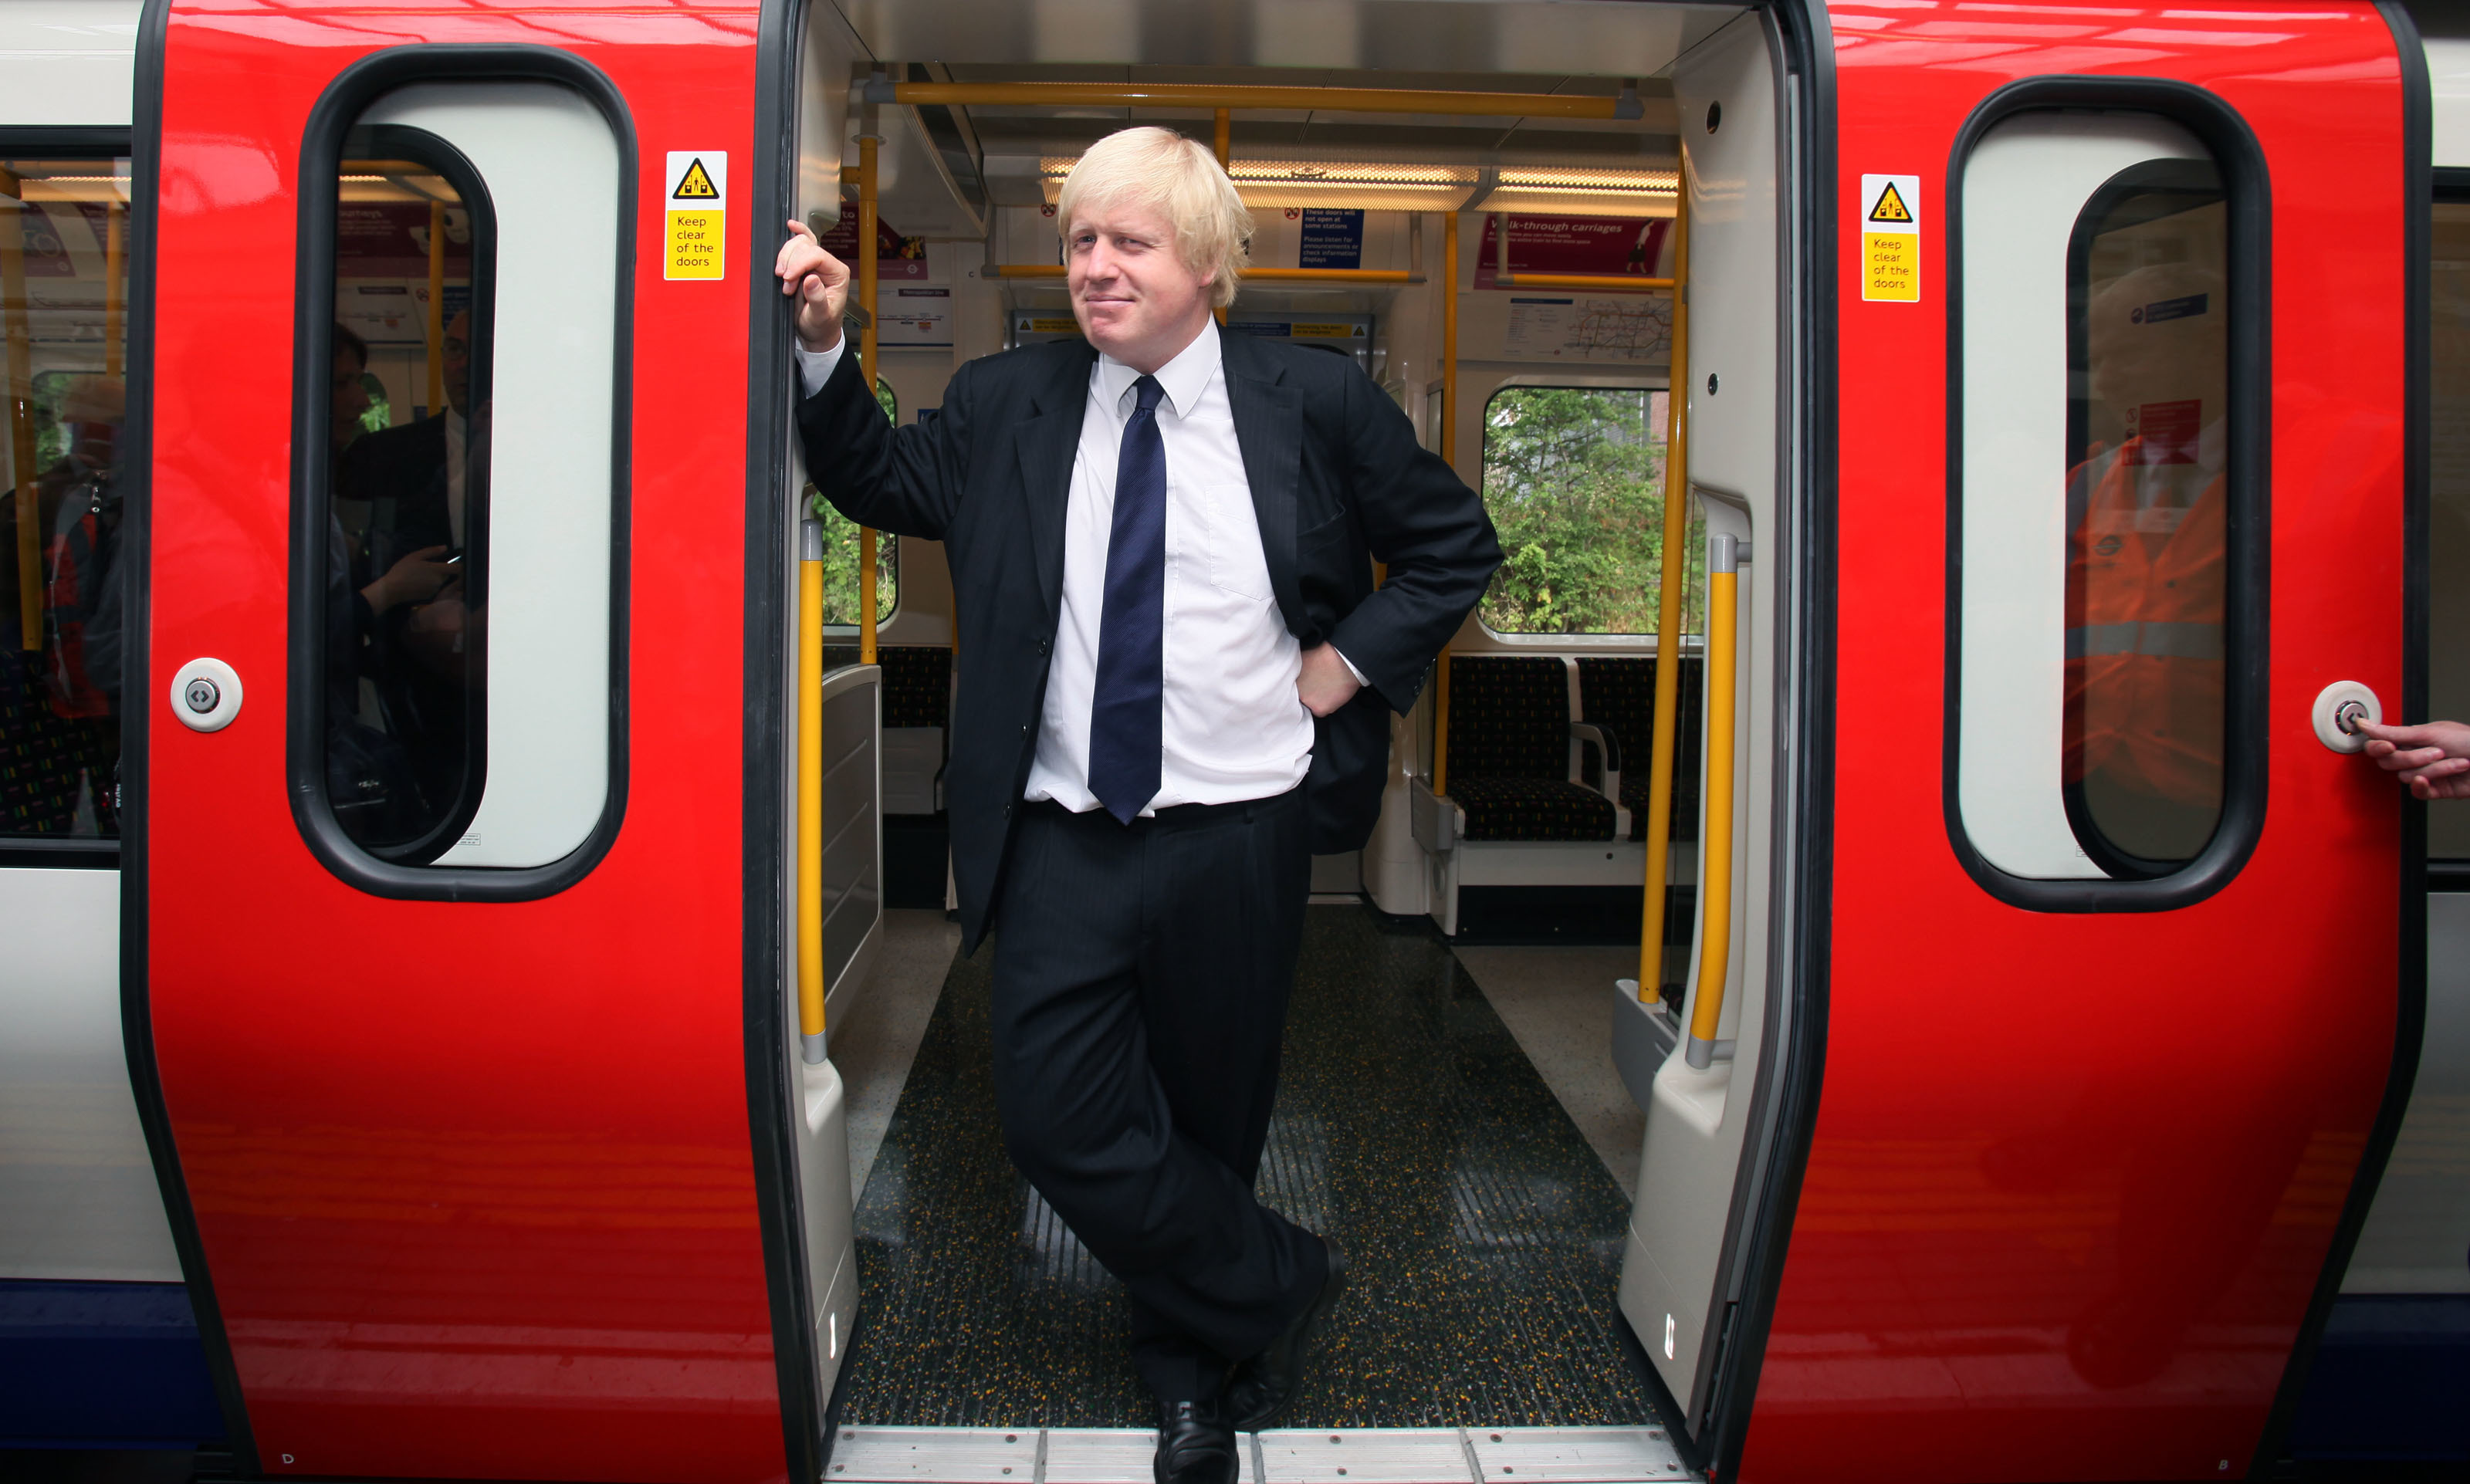 London Mayor Boris Johnson stands in the door of the first new air-conditioned train in London as part of a scheme to have 40\% of tube trains air-conditioned by 2015. PRESS ASSOCIATION Photo. Picture date: Monday August 02, 2010. The train serving the Metropolitan Line is the first of 191 brand new walk-through trains. See PA story TRANSPORT Air. Photo credit should read: Katie Collins/PA Wire